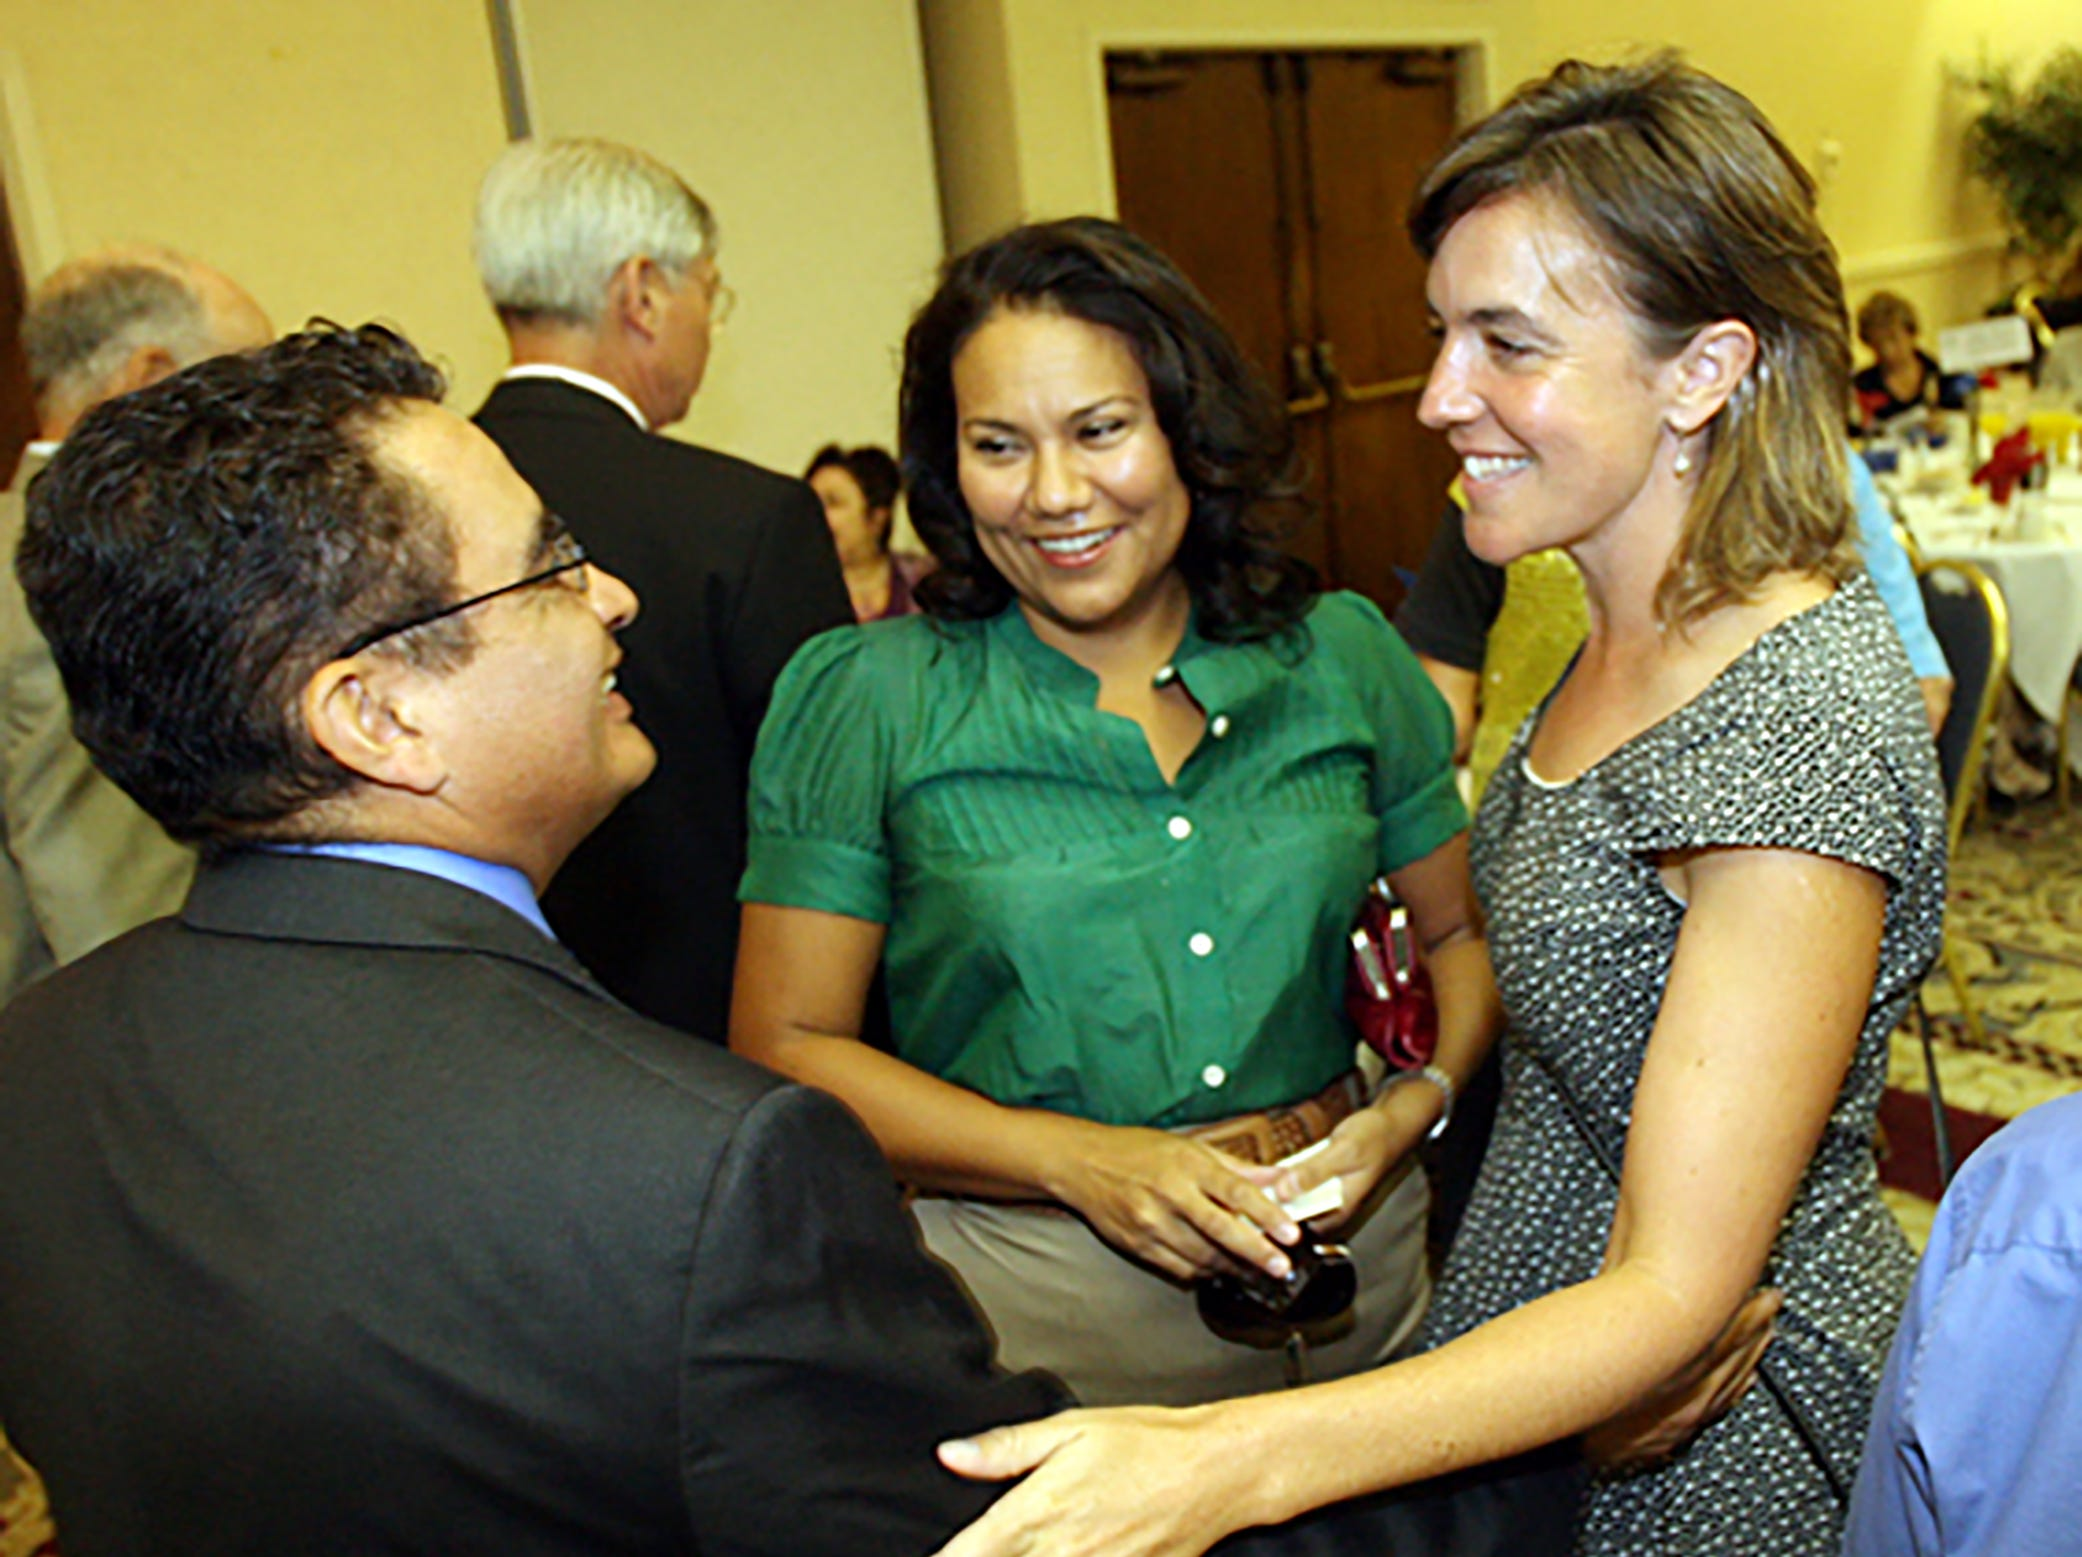 County judge Veronica Escobar and Susie Byrd along with District Attorney Jaime Esparza.